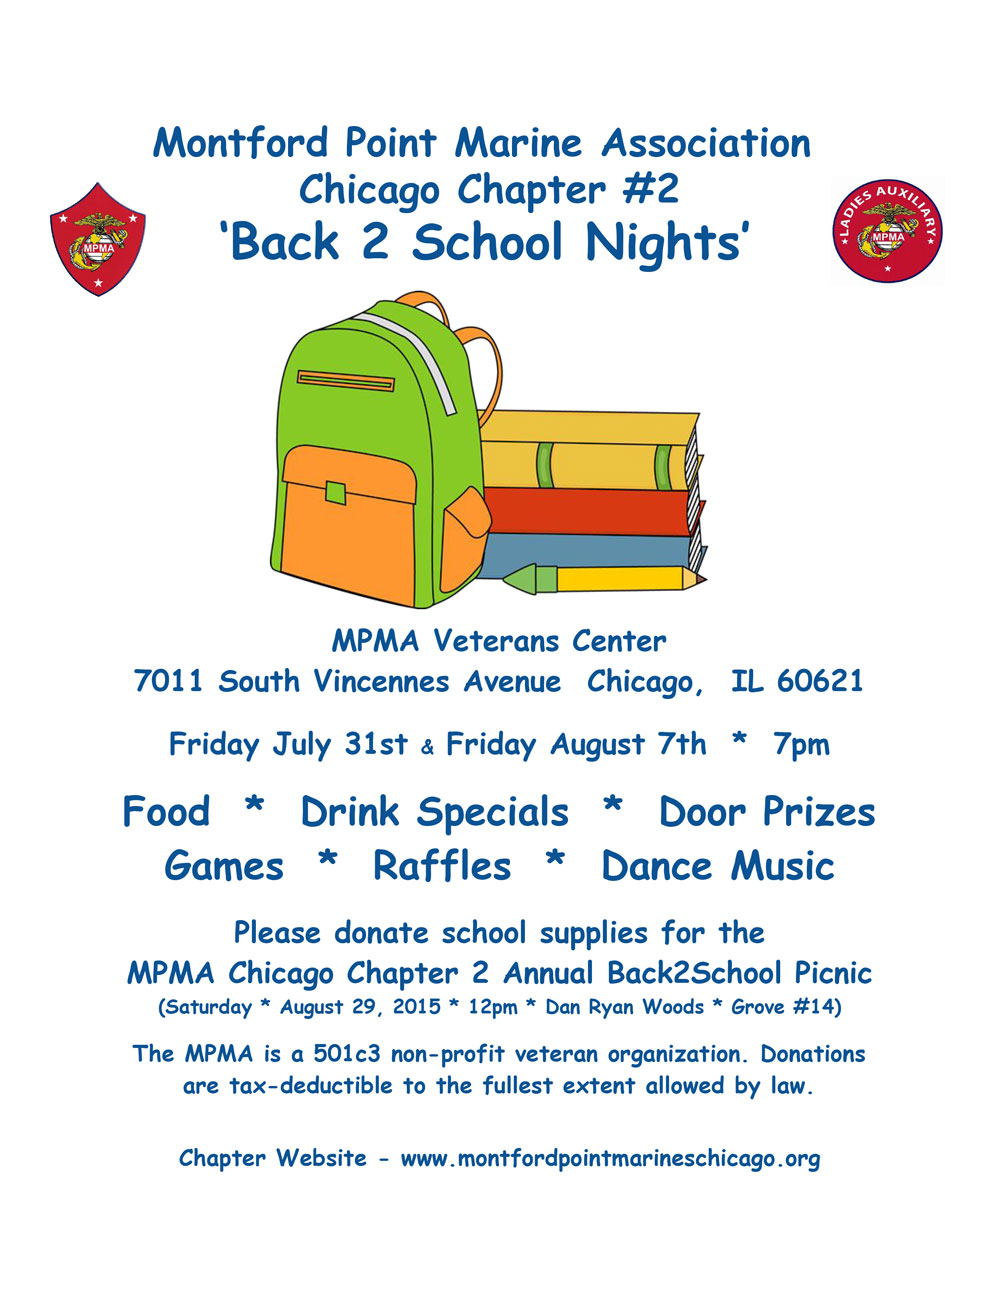 Back 2 School Nights with MPMA Chicago Chapter #2